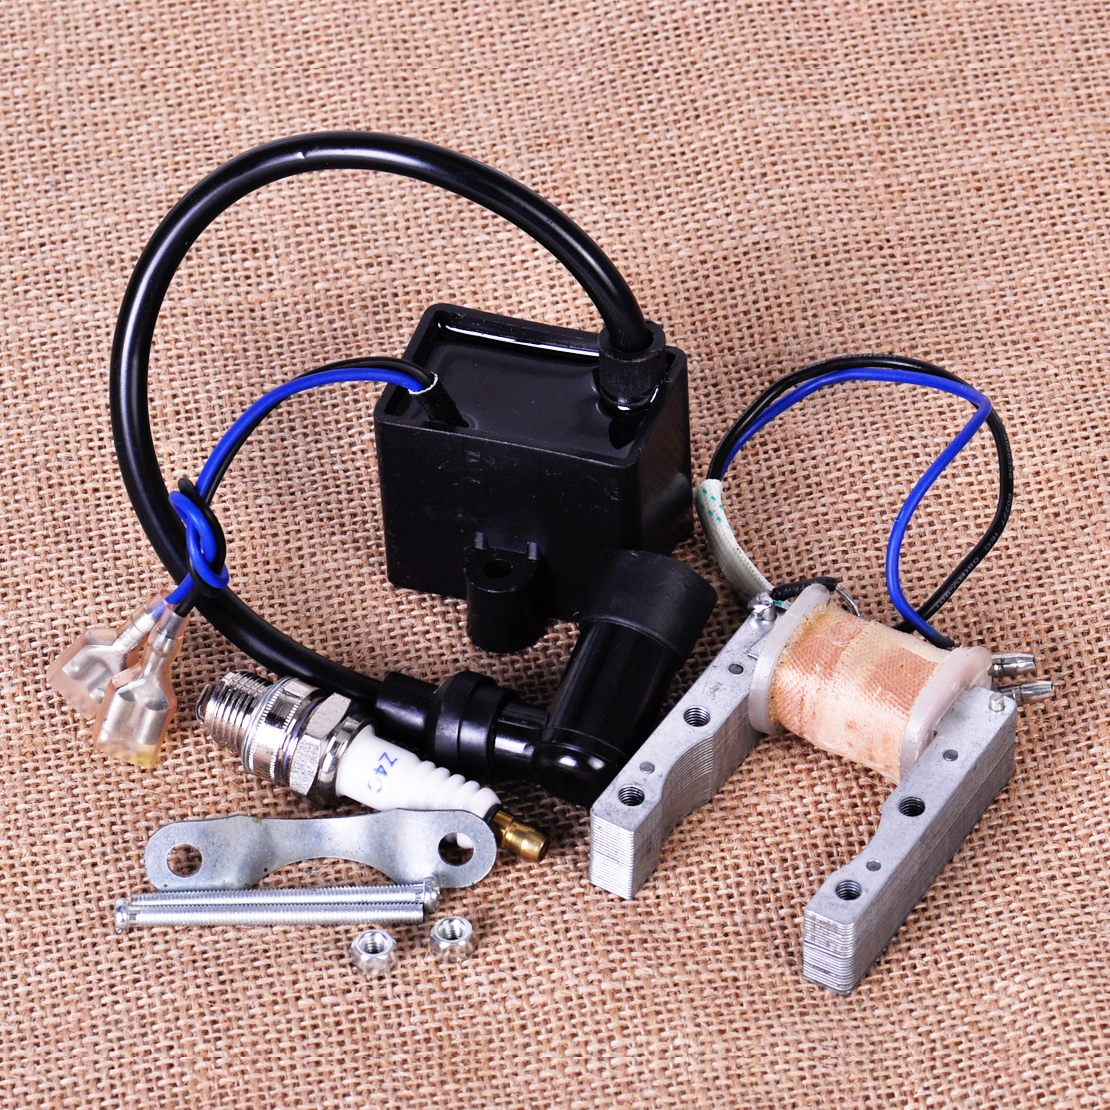 Ignition Coil Engine Light: Aliexpress.com : Buy CITALL New Ignition Coil + Magneto